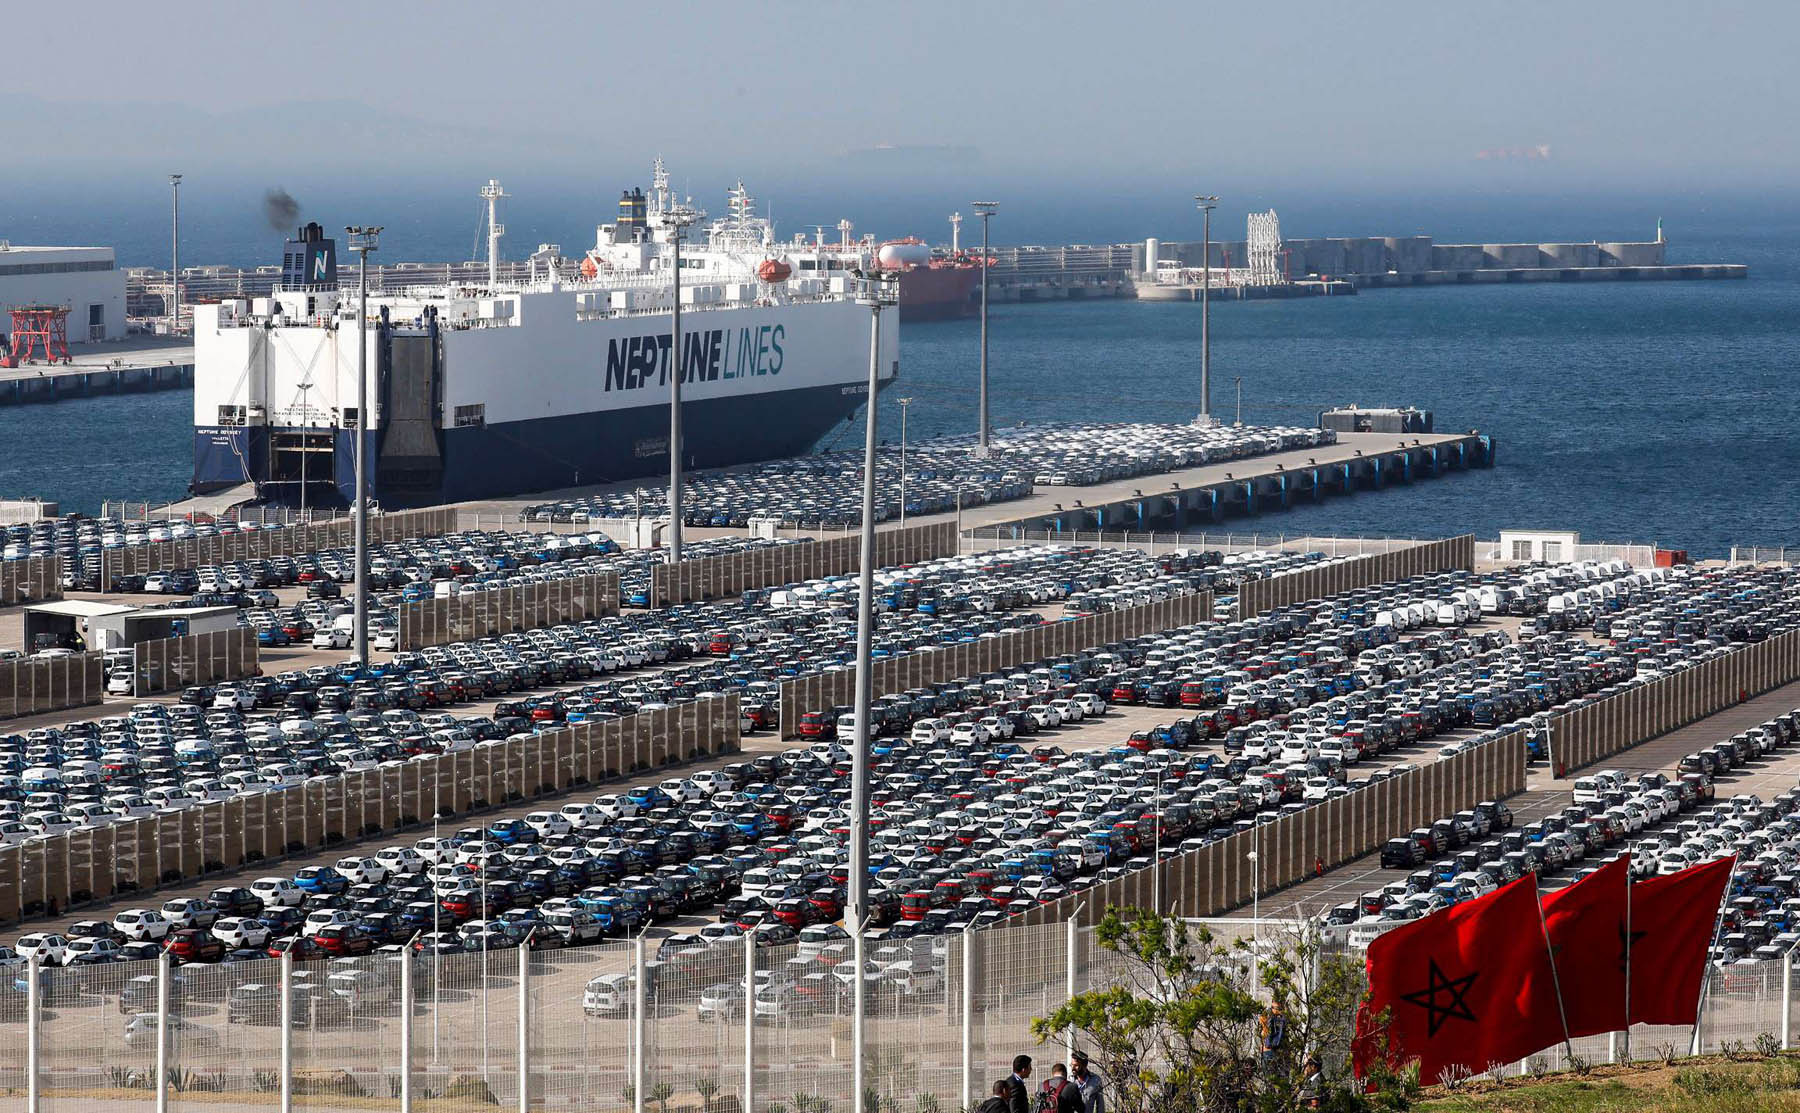 A view of a ship moored next to a lot of cars at Terminal I of the Tanger Med port on the Strait of Gibraltar. 	 (AFP)